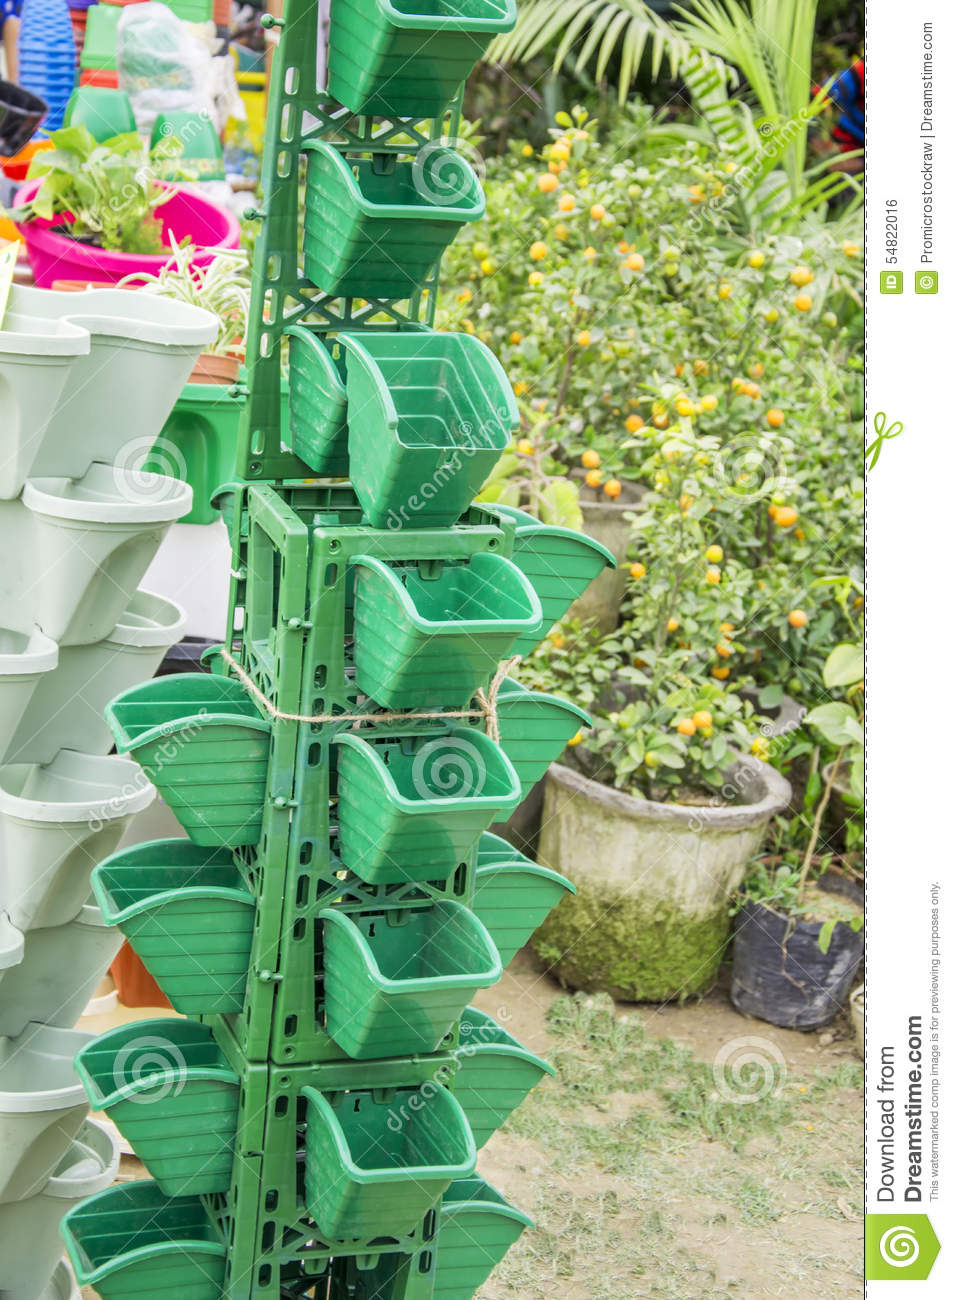 Vertical Garden Pot Vertical garden pots stock photo image of vertical potted 54822016 workwithnaturefo